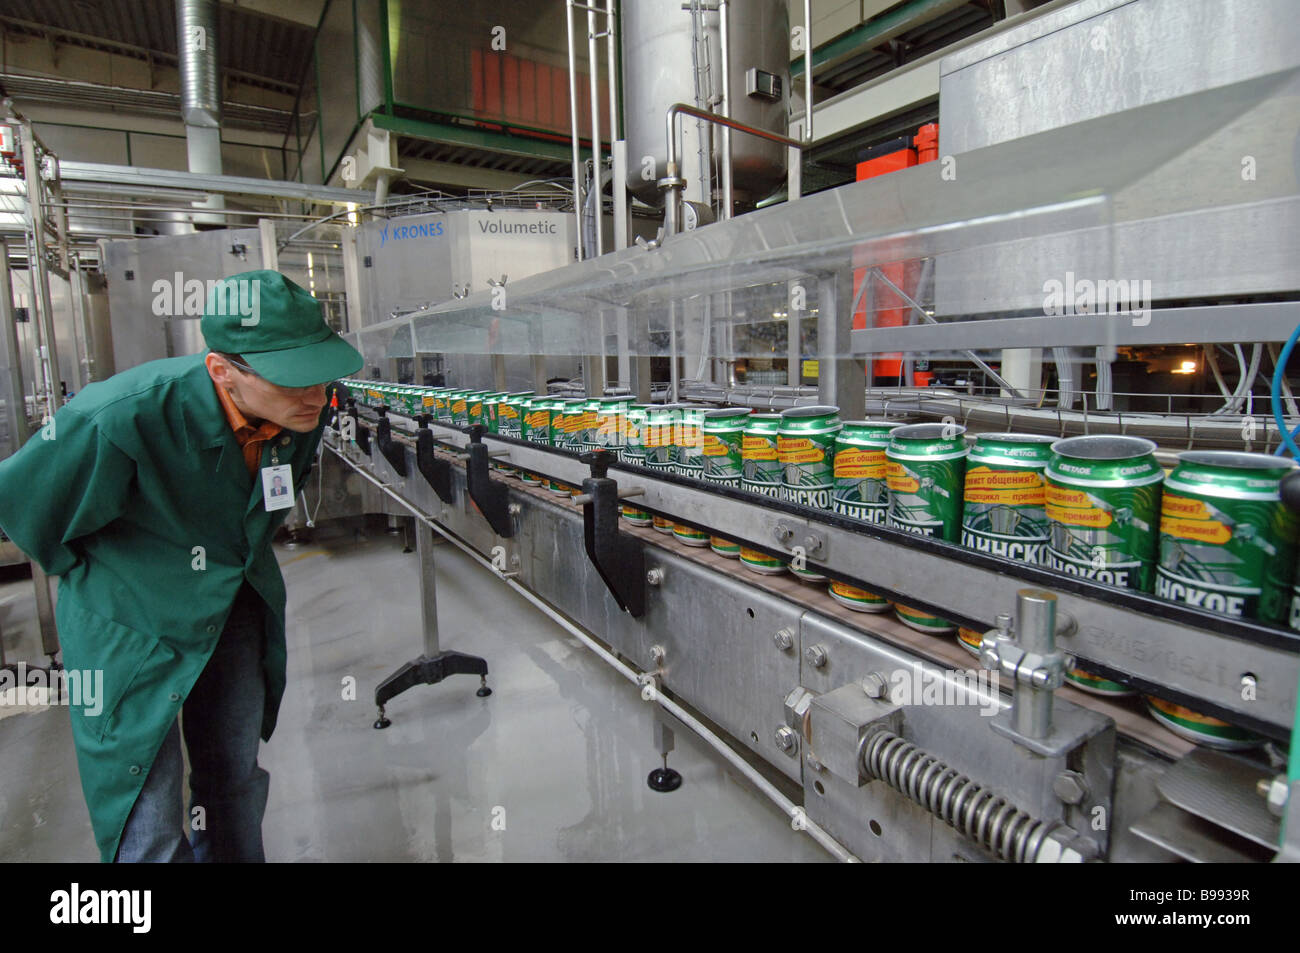 Canning line at Klin based brewery - Stock Image